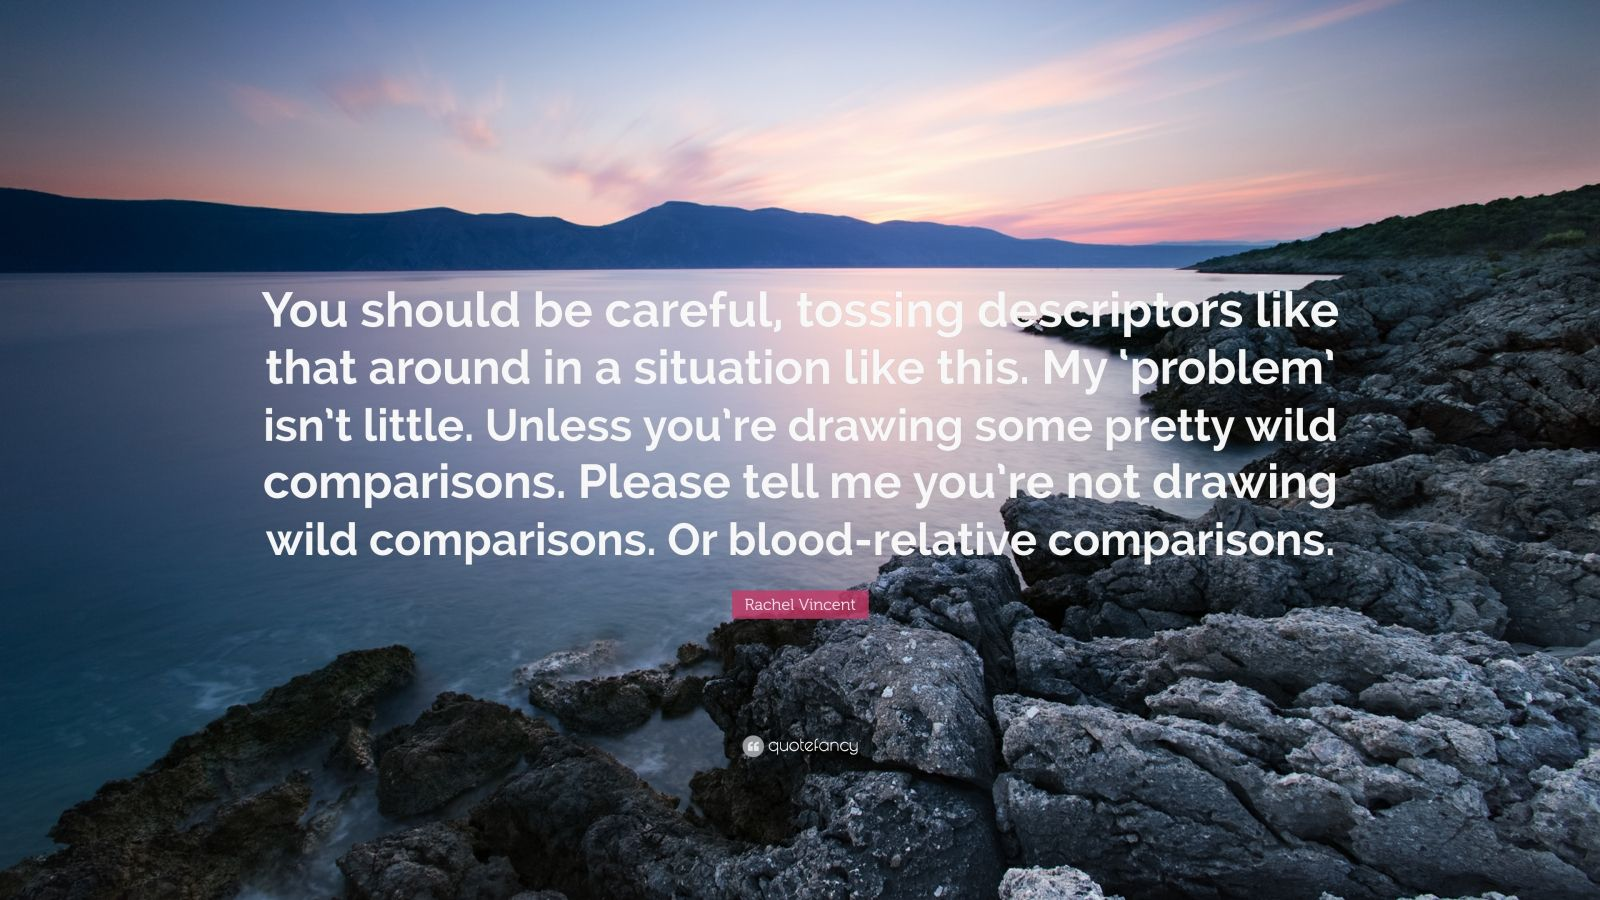 """Rachel Vincent Quote: """"You should be careful, tossing descriptors like that around in a situation like this. My 'problem' isn't little. Unless you're drawing some pretty wild comparisons. Please tell me you're not drawing wild comparisons. Or blood-relative comparisons."""""""